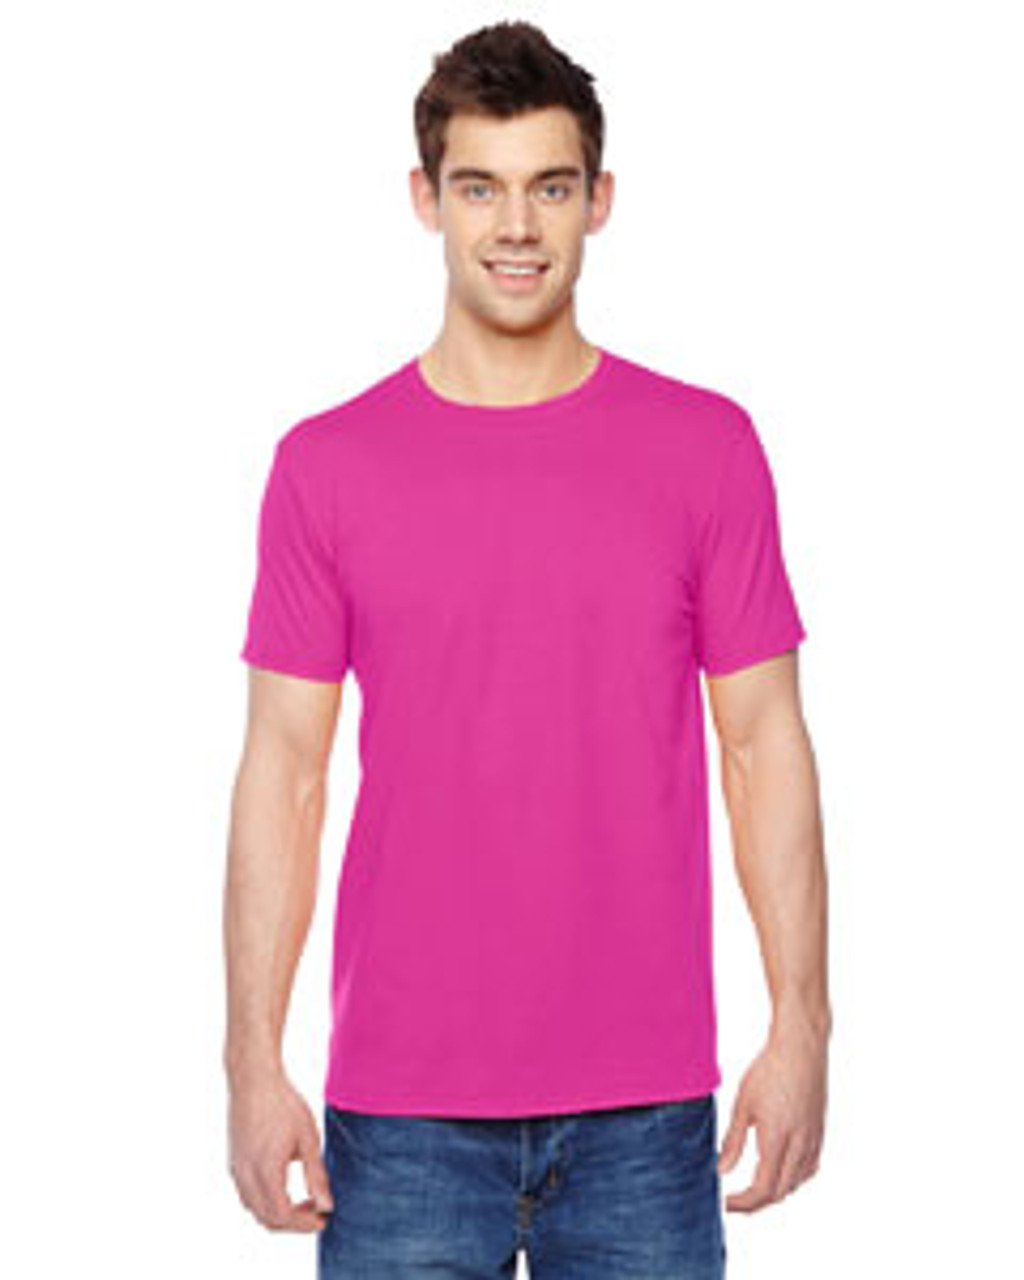 Cyber Pink - SF45R Fruit of the Loom Softspun Cotton T-Shirt | Blankclothing.ca